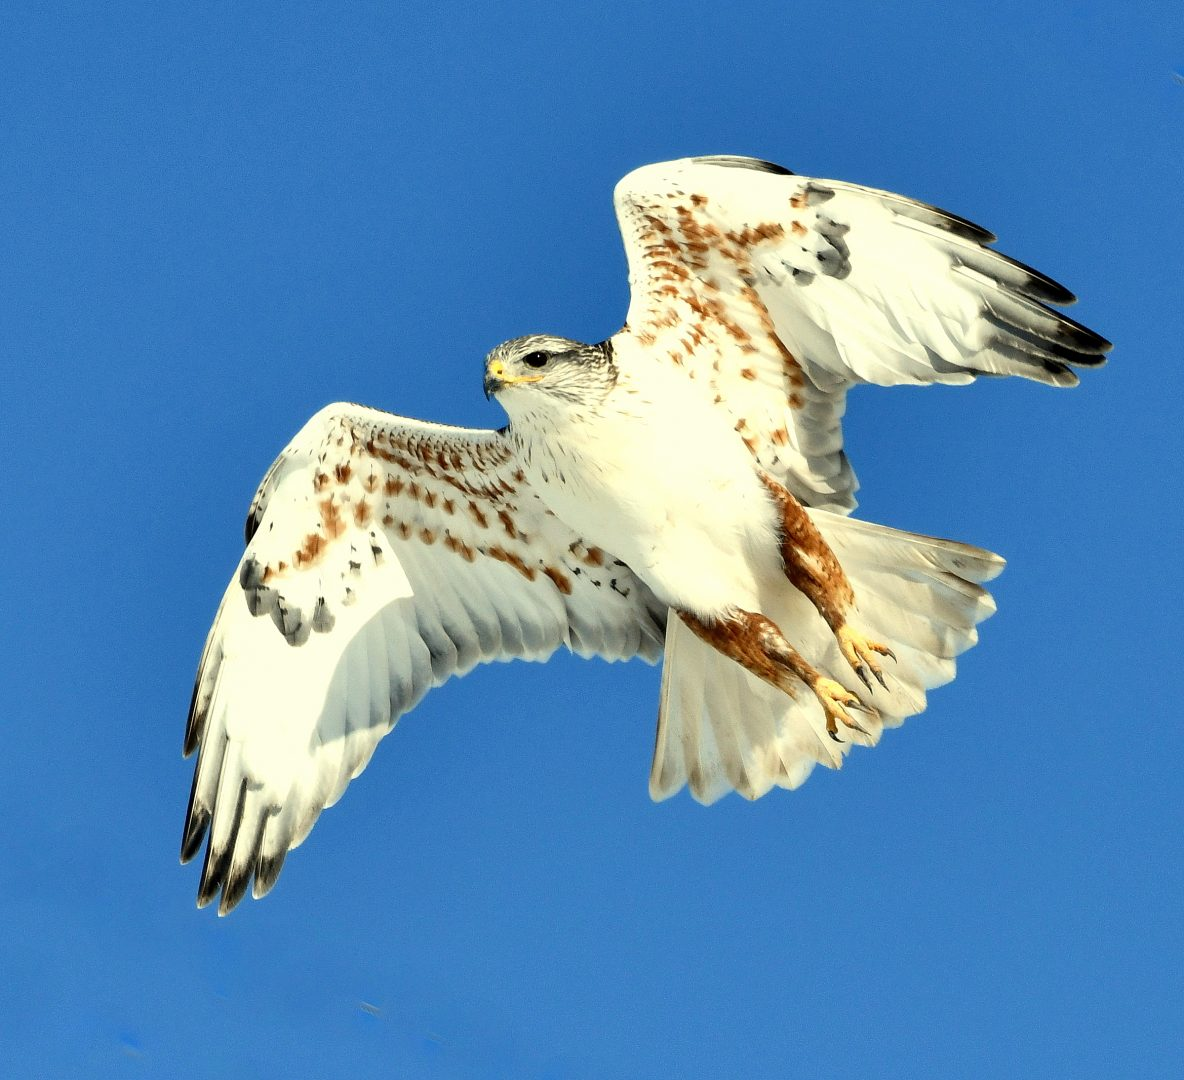 Ferruginous Hawk | Estancia , New Mexico | Feb. 2020